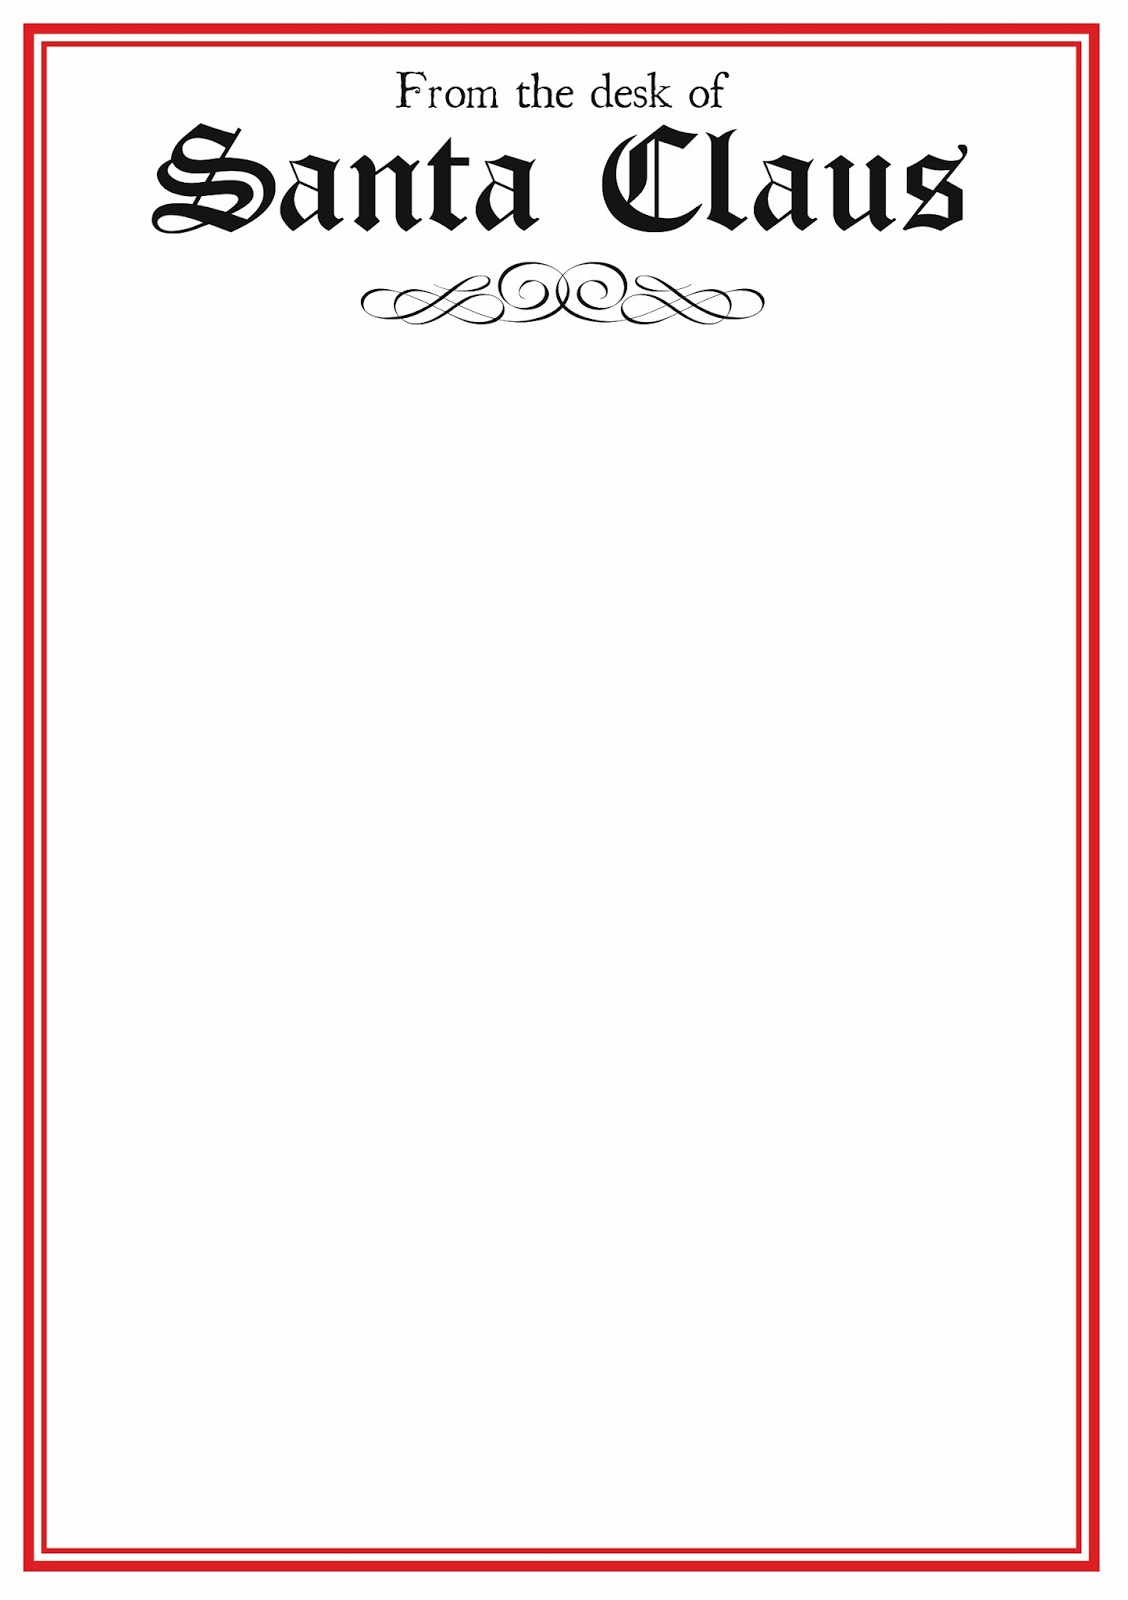 free printable letter from santa template word example-word santa letter template 17-i